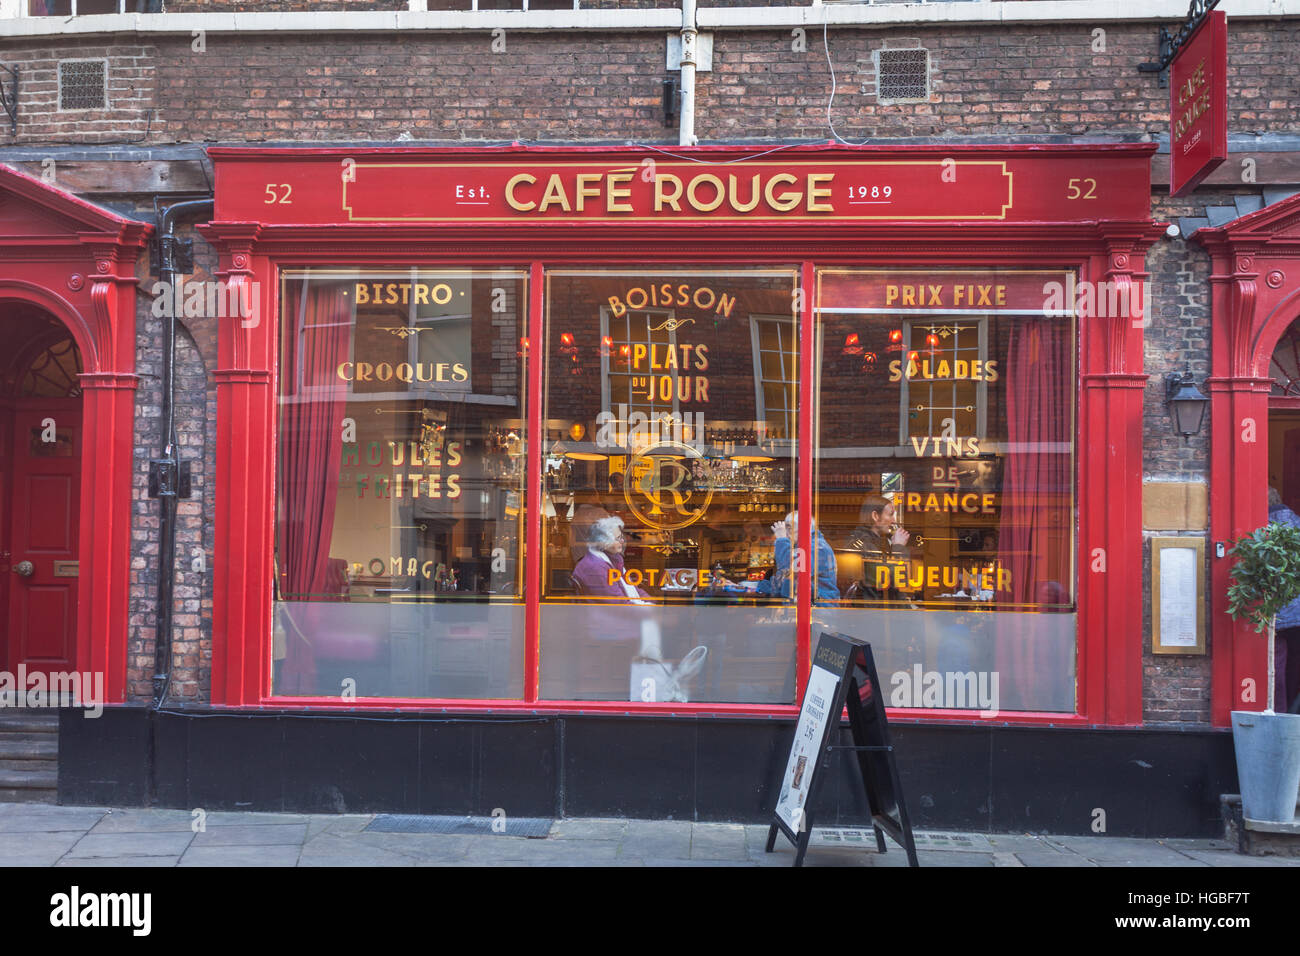 Cafe Rouge cafe in The Shambles, York city centre, UK - Stock Image